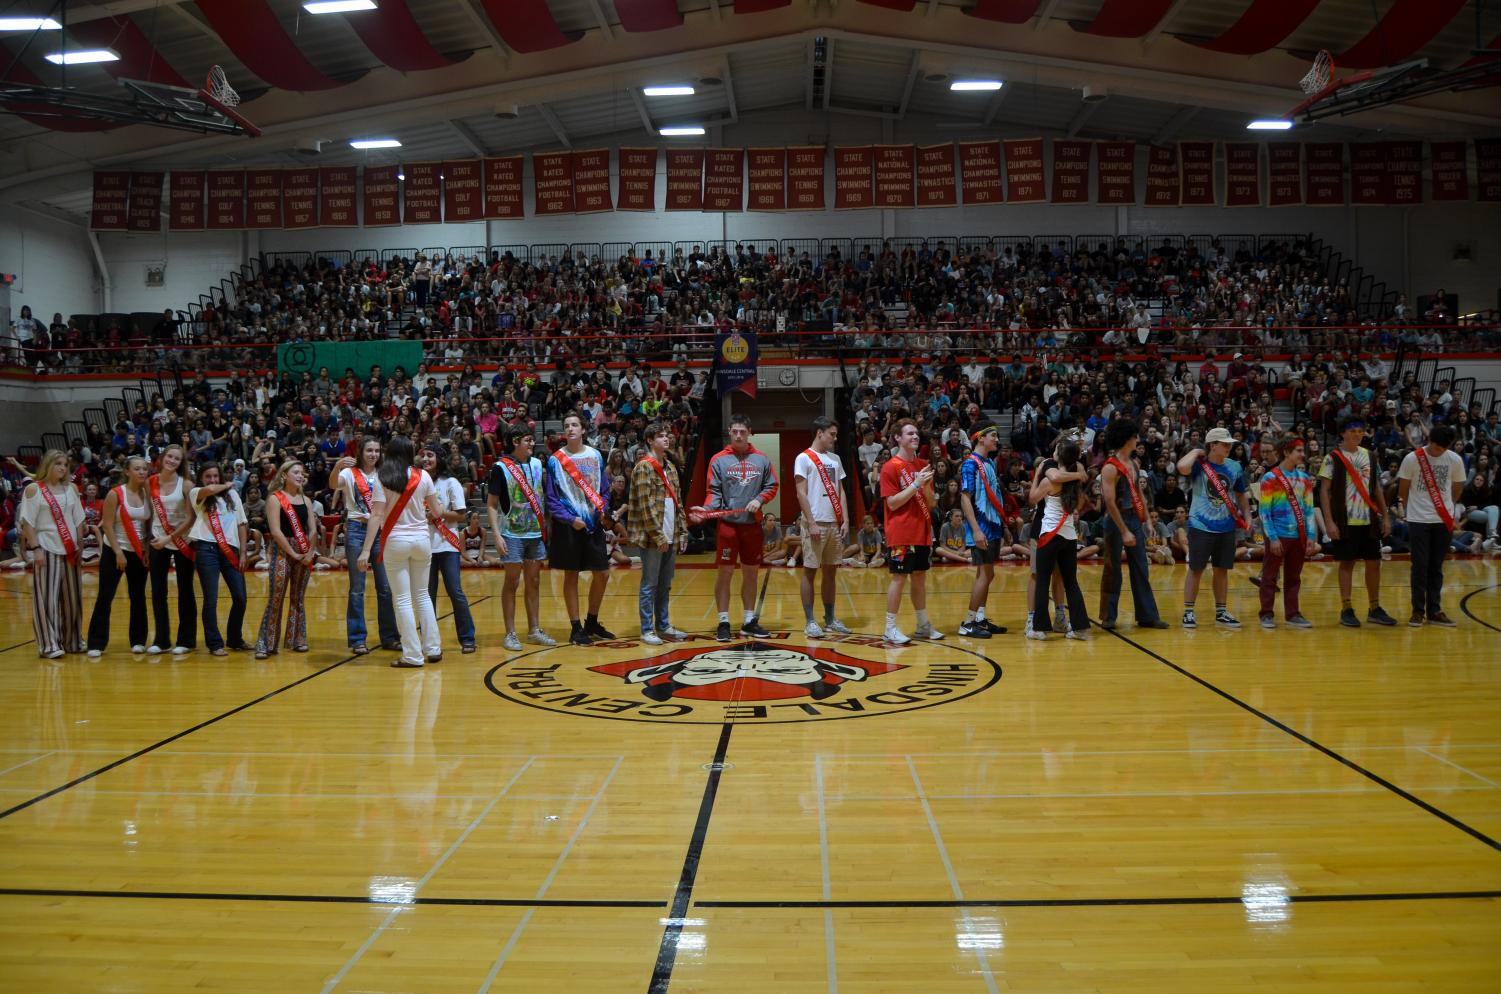 The senior students vote for 13 senior girls and 13 senior boys to make up the Homecoming Court each year. The assembly to announce this year's selection was held on Friday, Sept. 14.